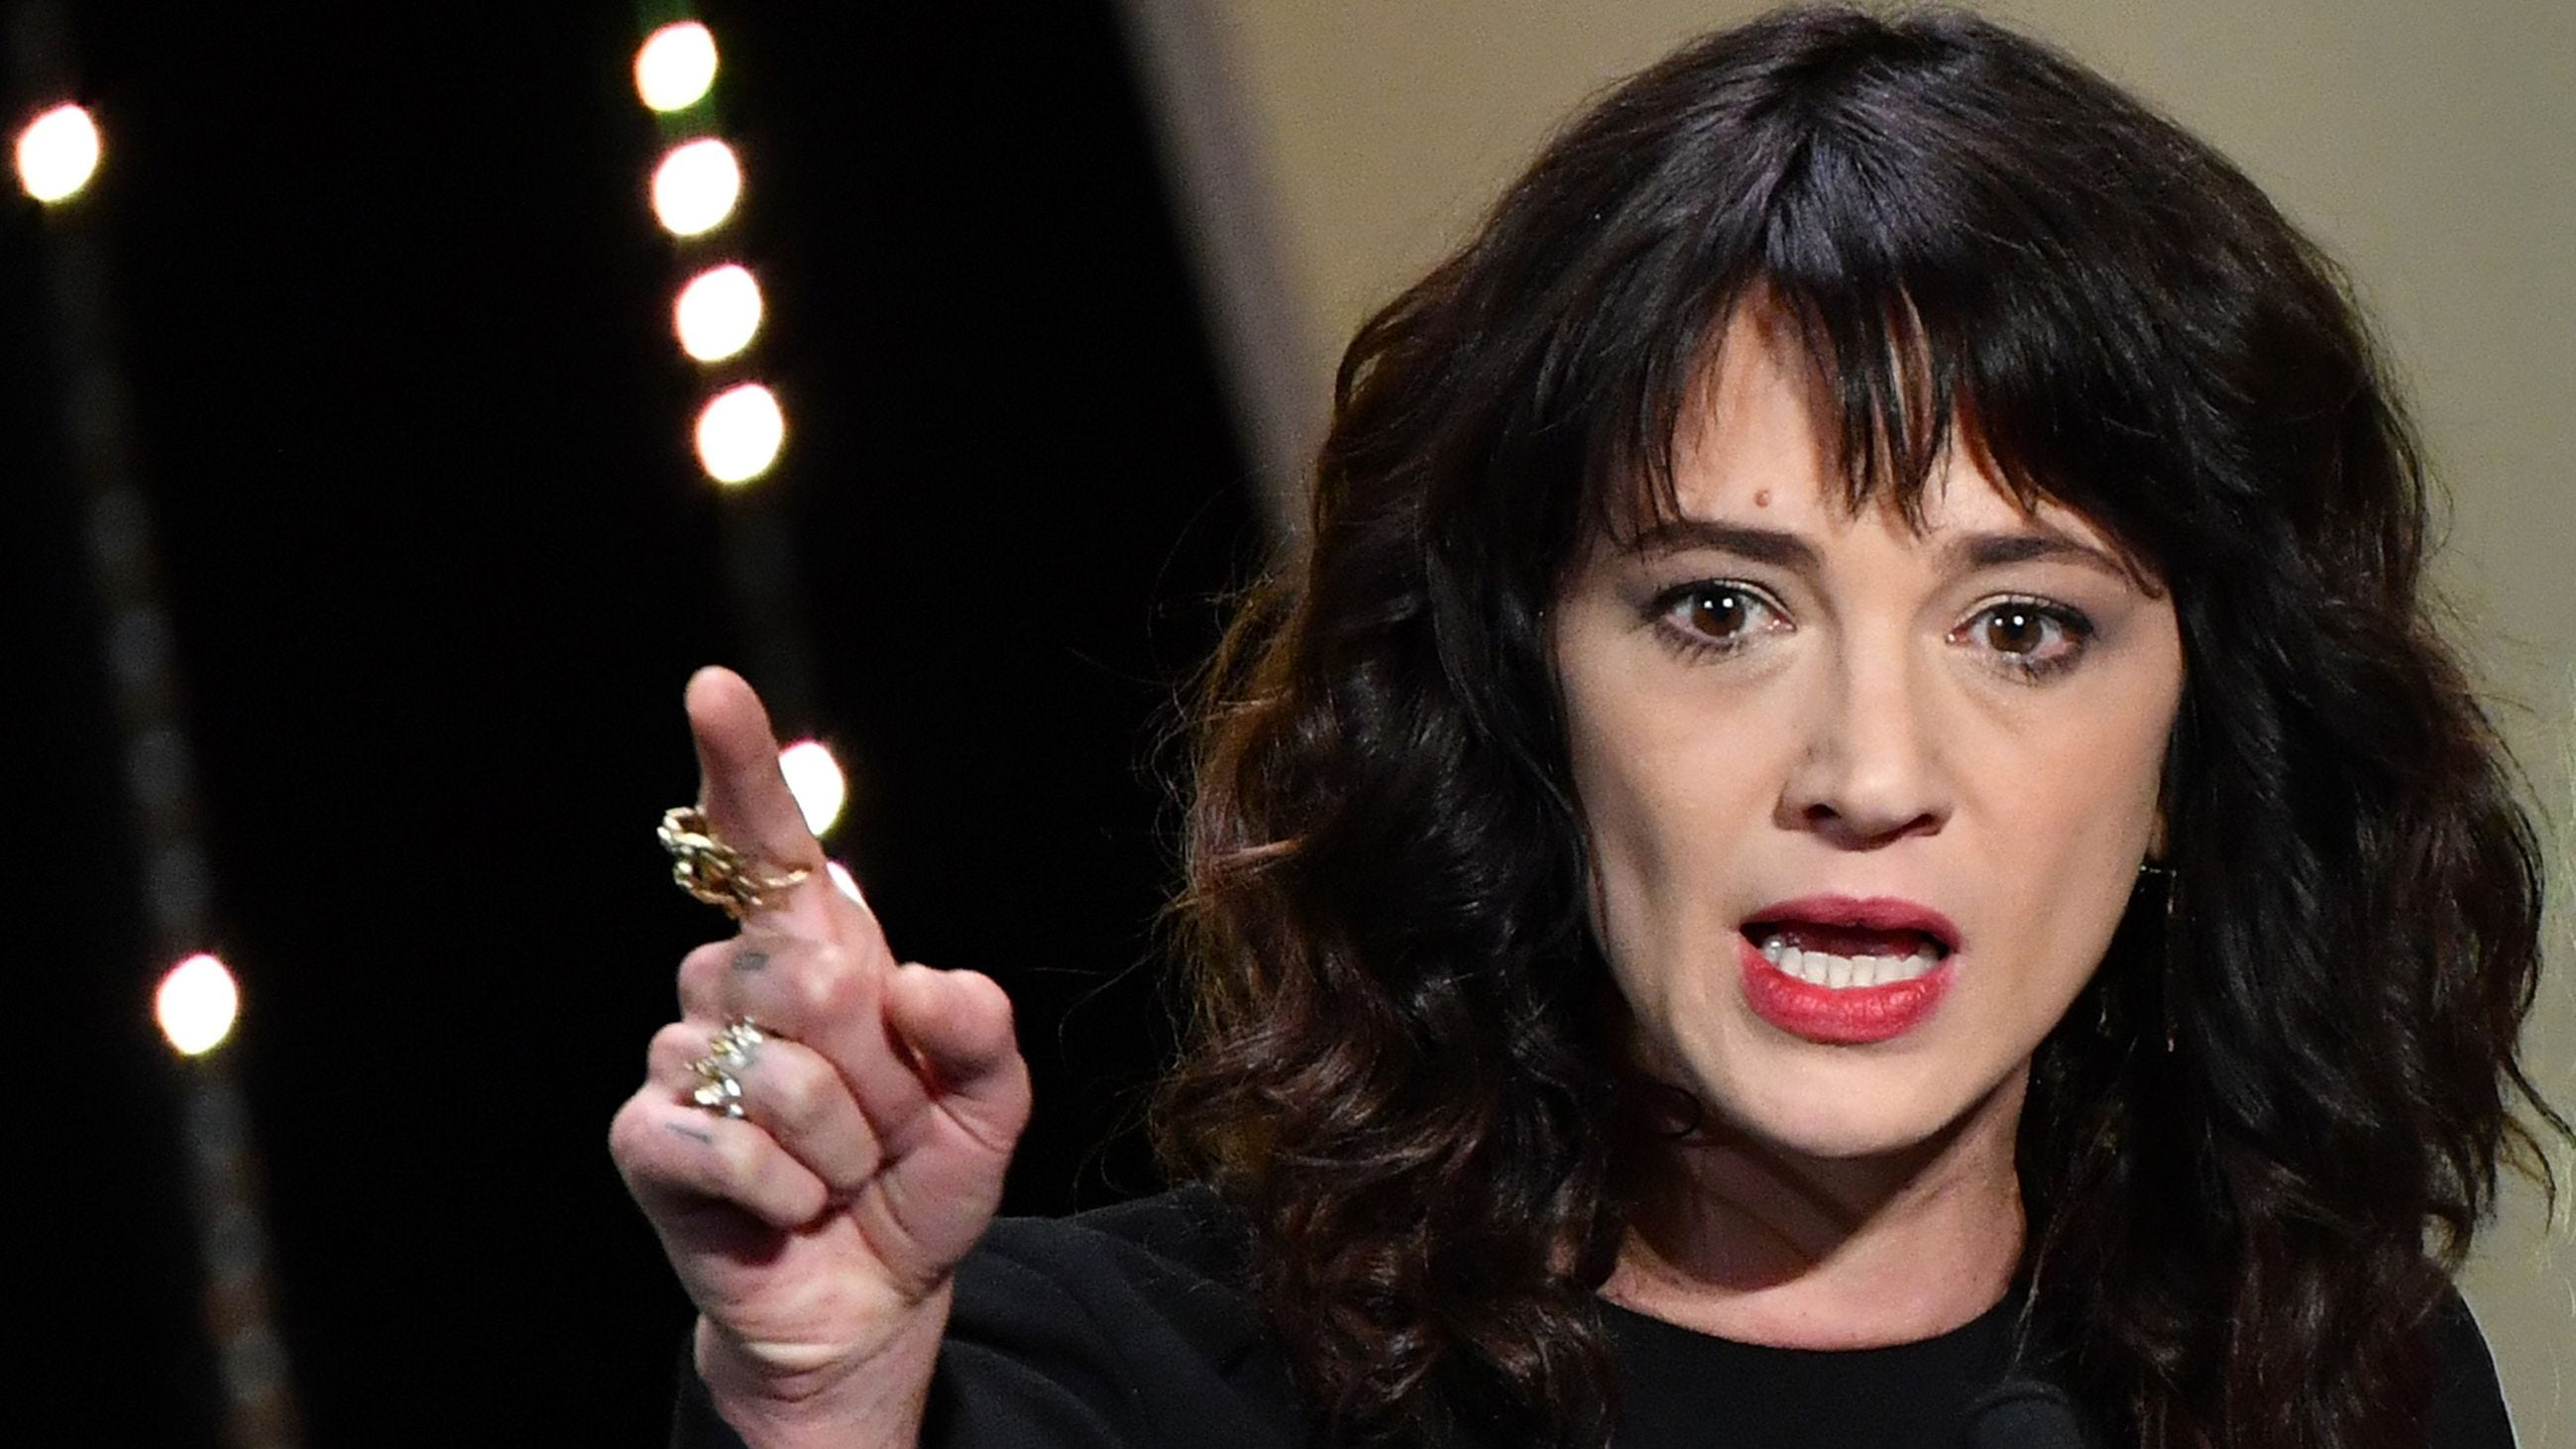 Italian actress Asia Argento on May 19, 2018 at the Cannes Film Festival in Cannes, France. / AFP)ALBERTO PIZZOLI/AFP/Getty Images ORIG FILE ID: AFP_18I4F7